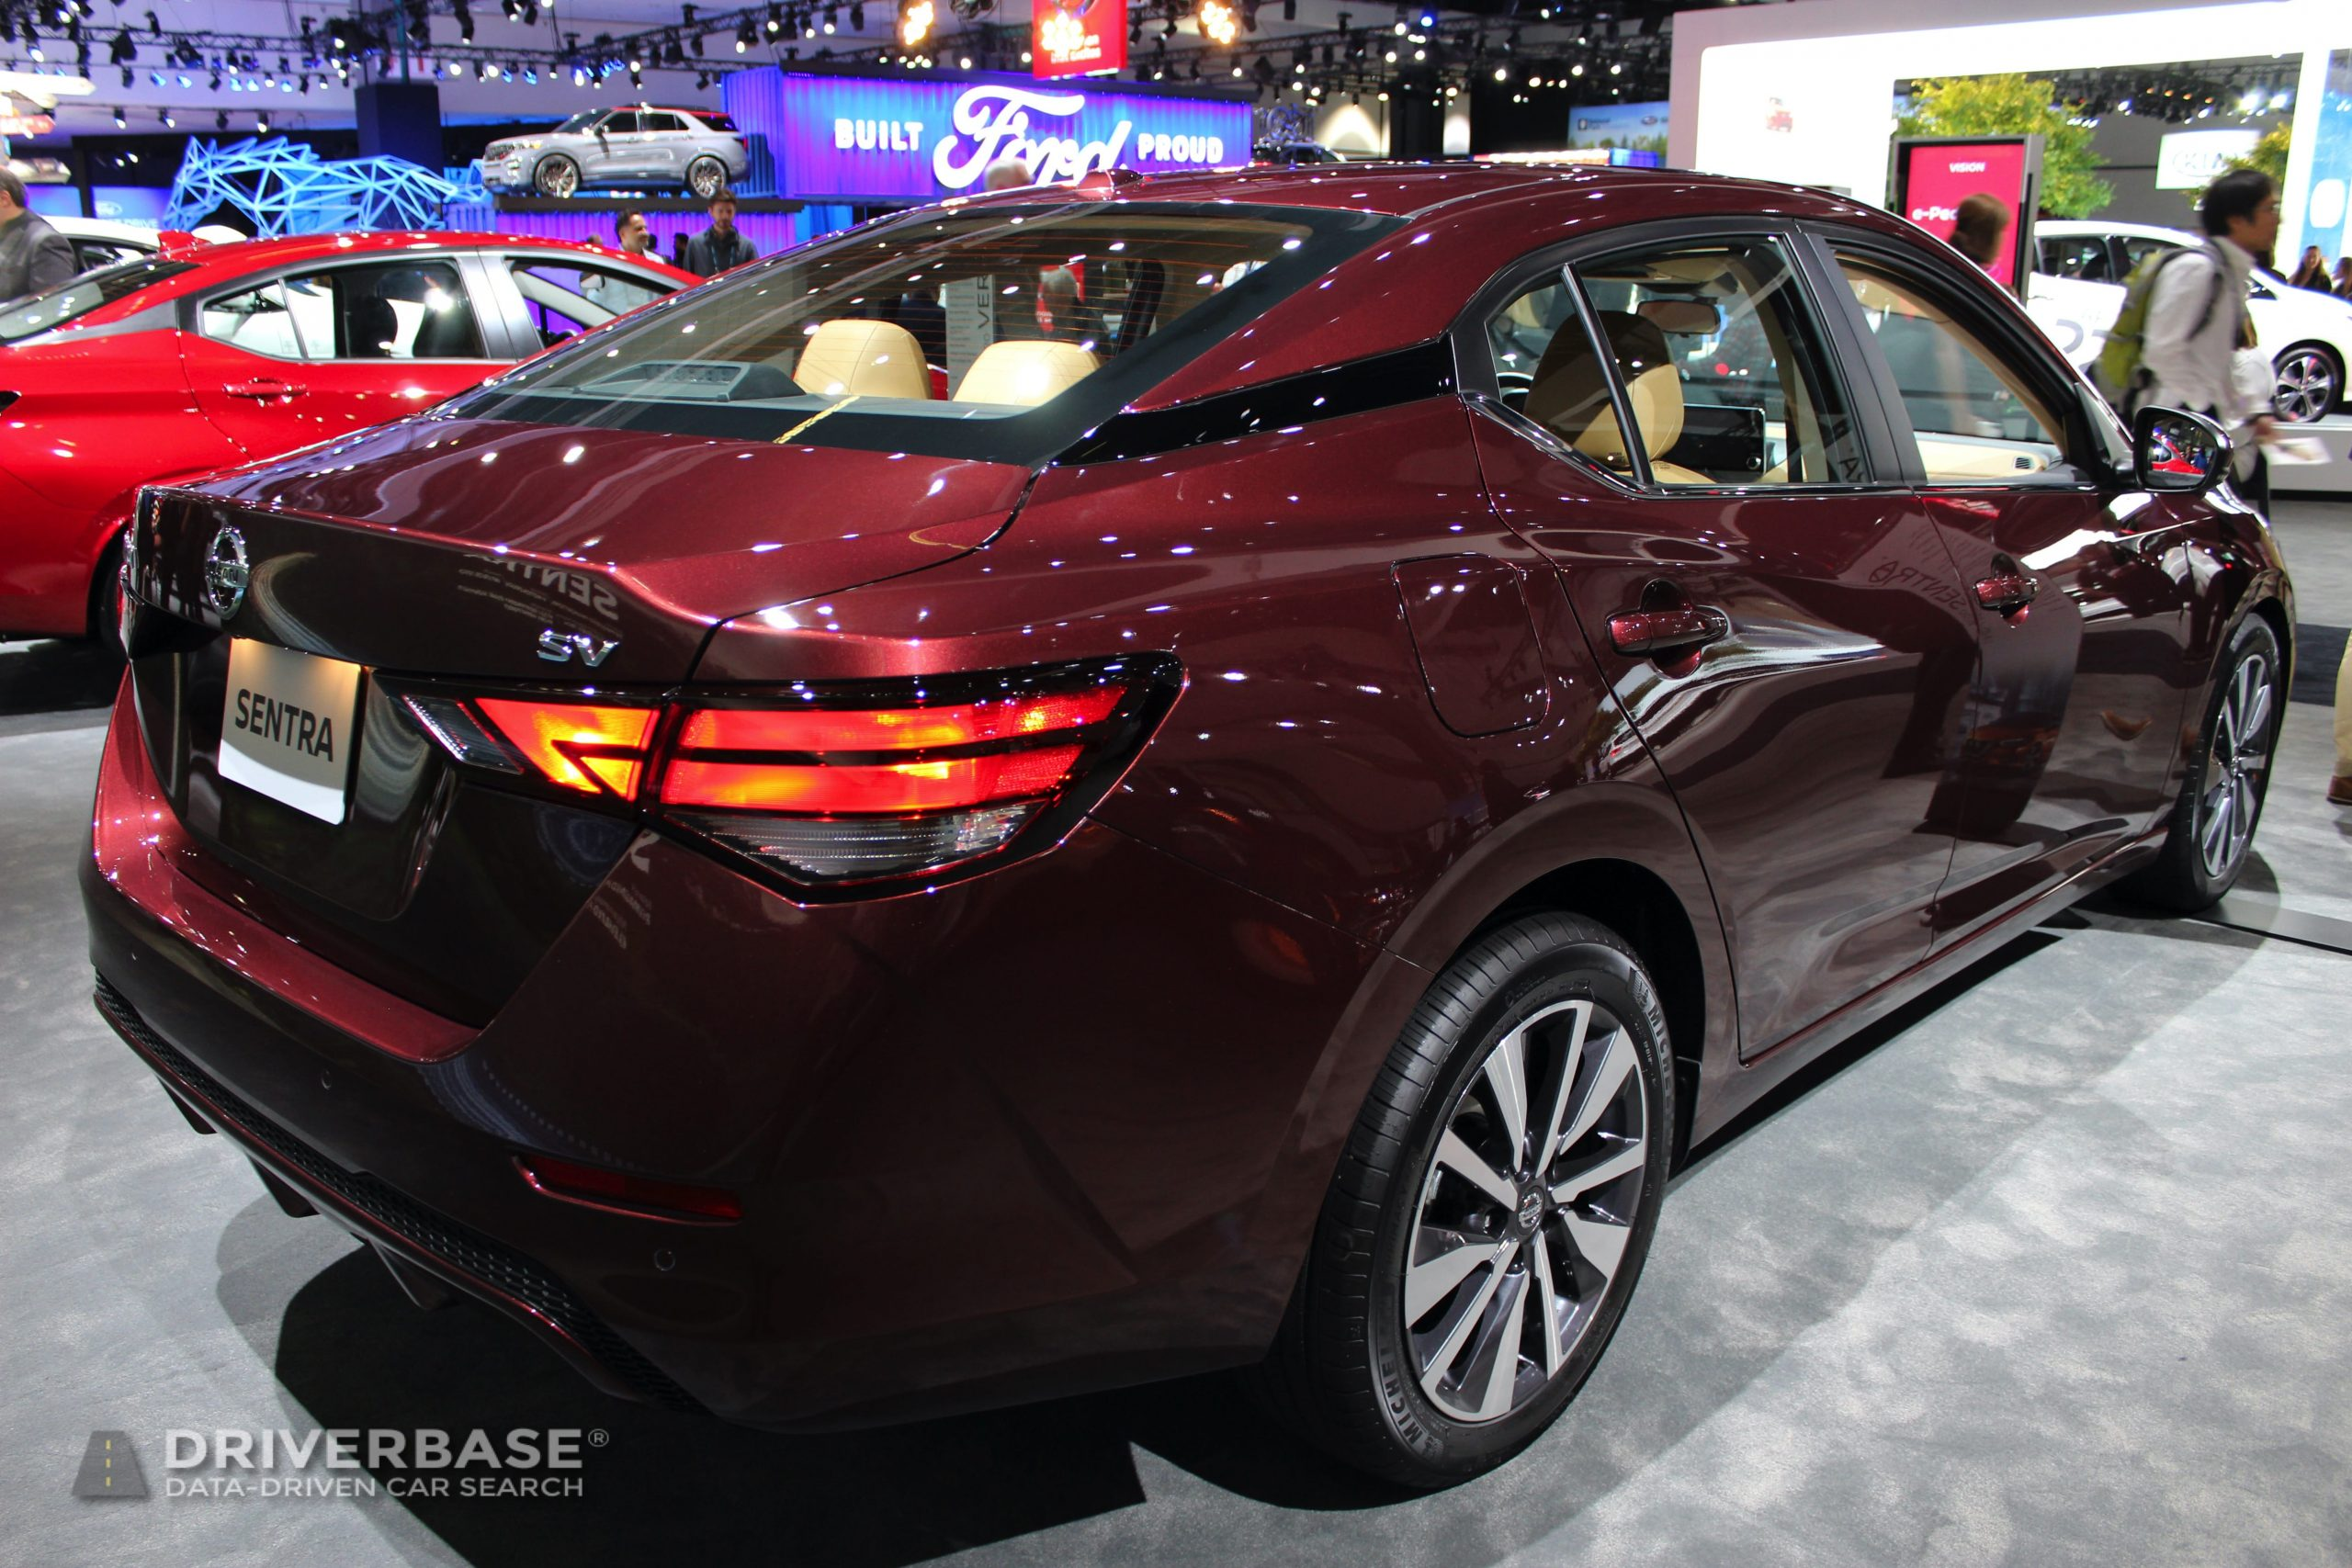 2020 Nissan Sentra Sv At The 2019 Los Angeles Auto Show Driverbase